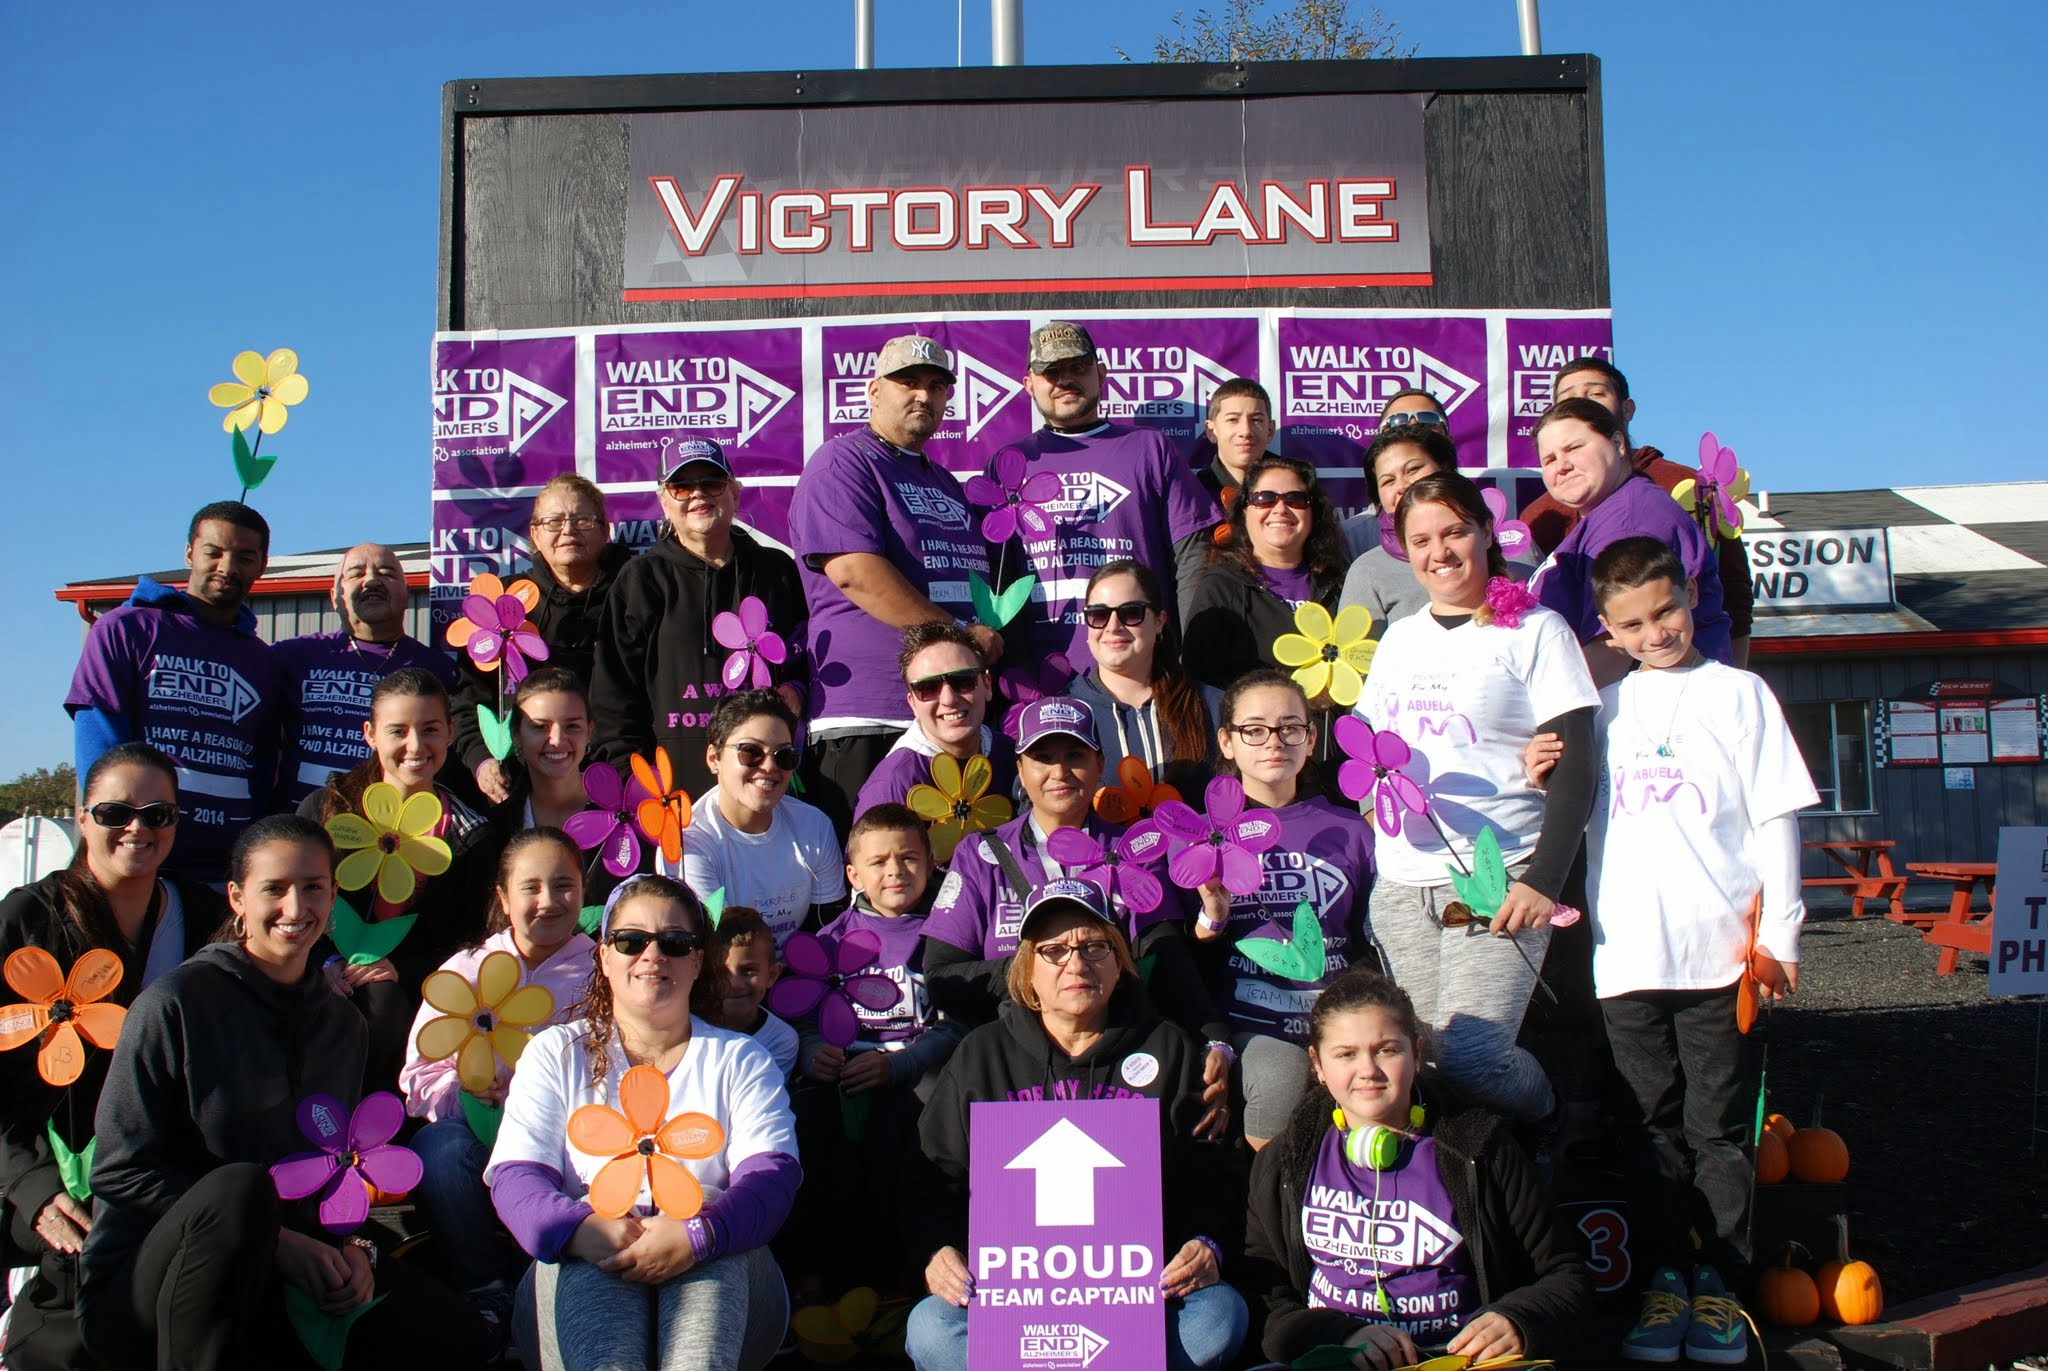 Walk to End Alzheimer's being held at N.J. Motorsports Park in Millville